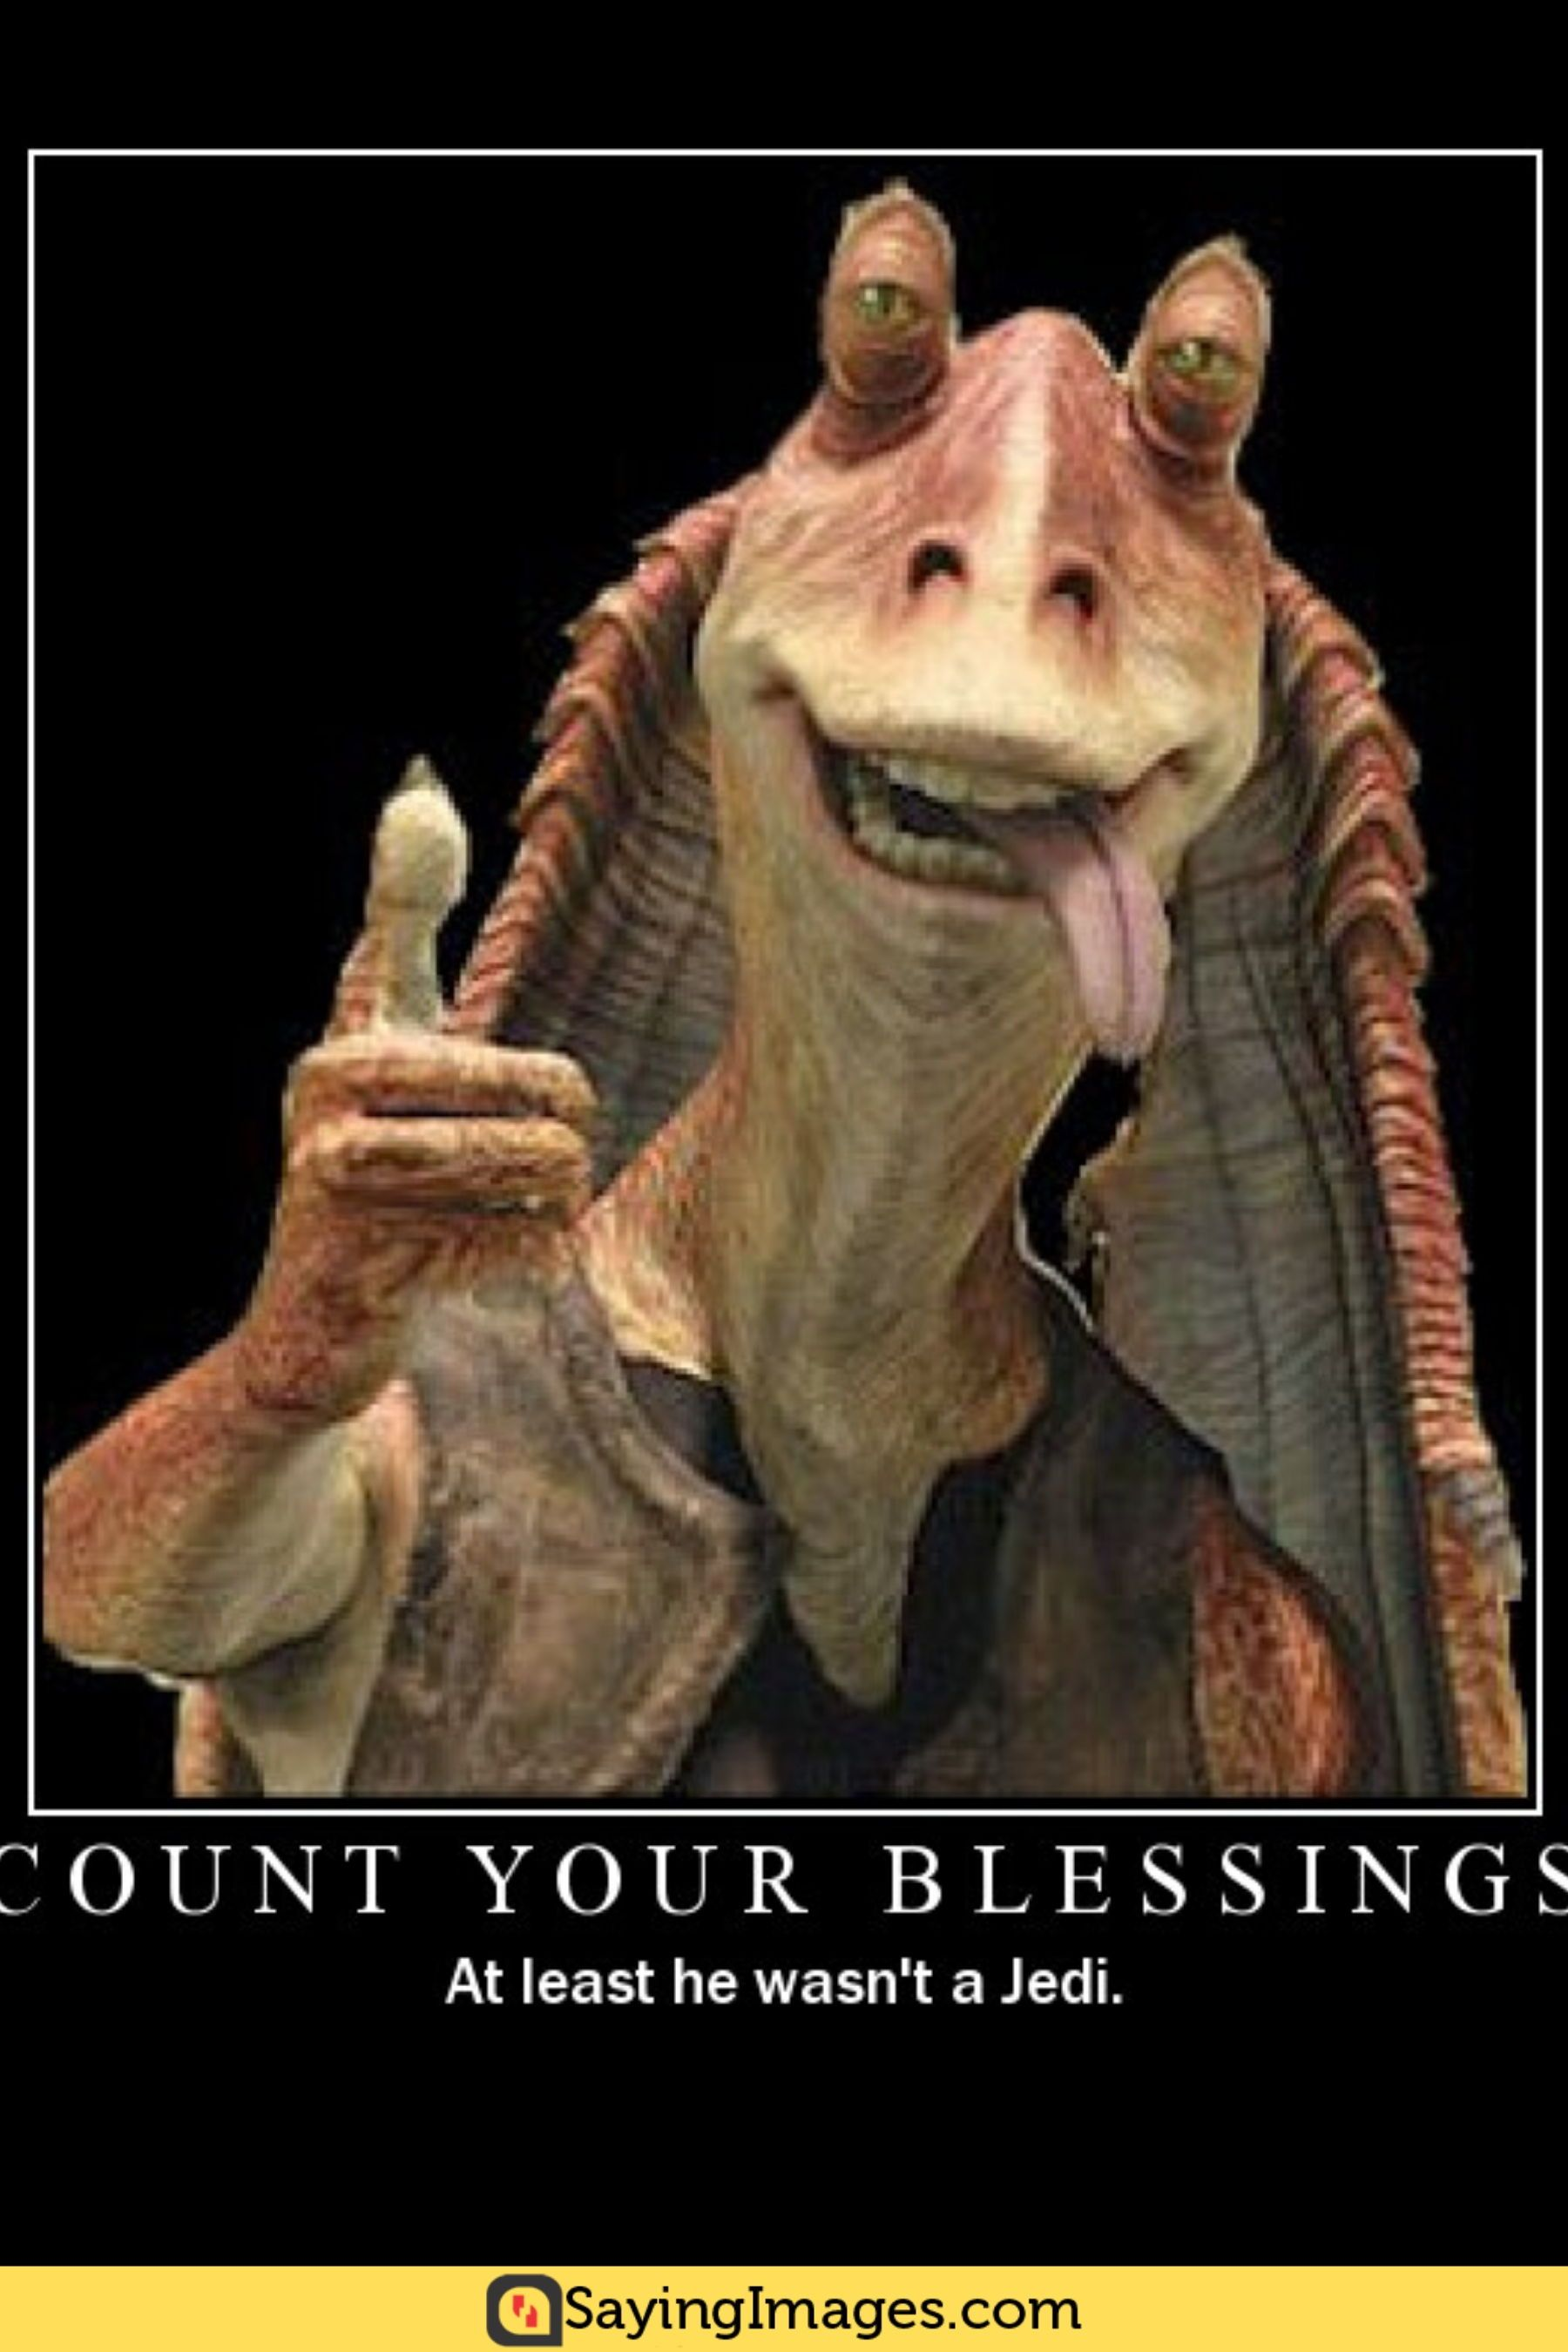 20 Jar Jar Binks Memes That Will Make You Love The Character Even More Sayingimages Com Star Wars Characters Star Wars Fan Fiction Stories